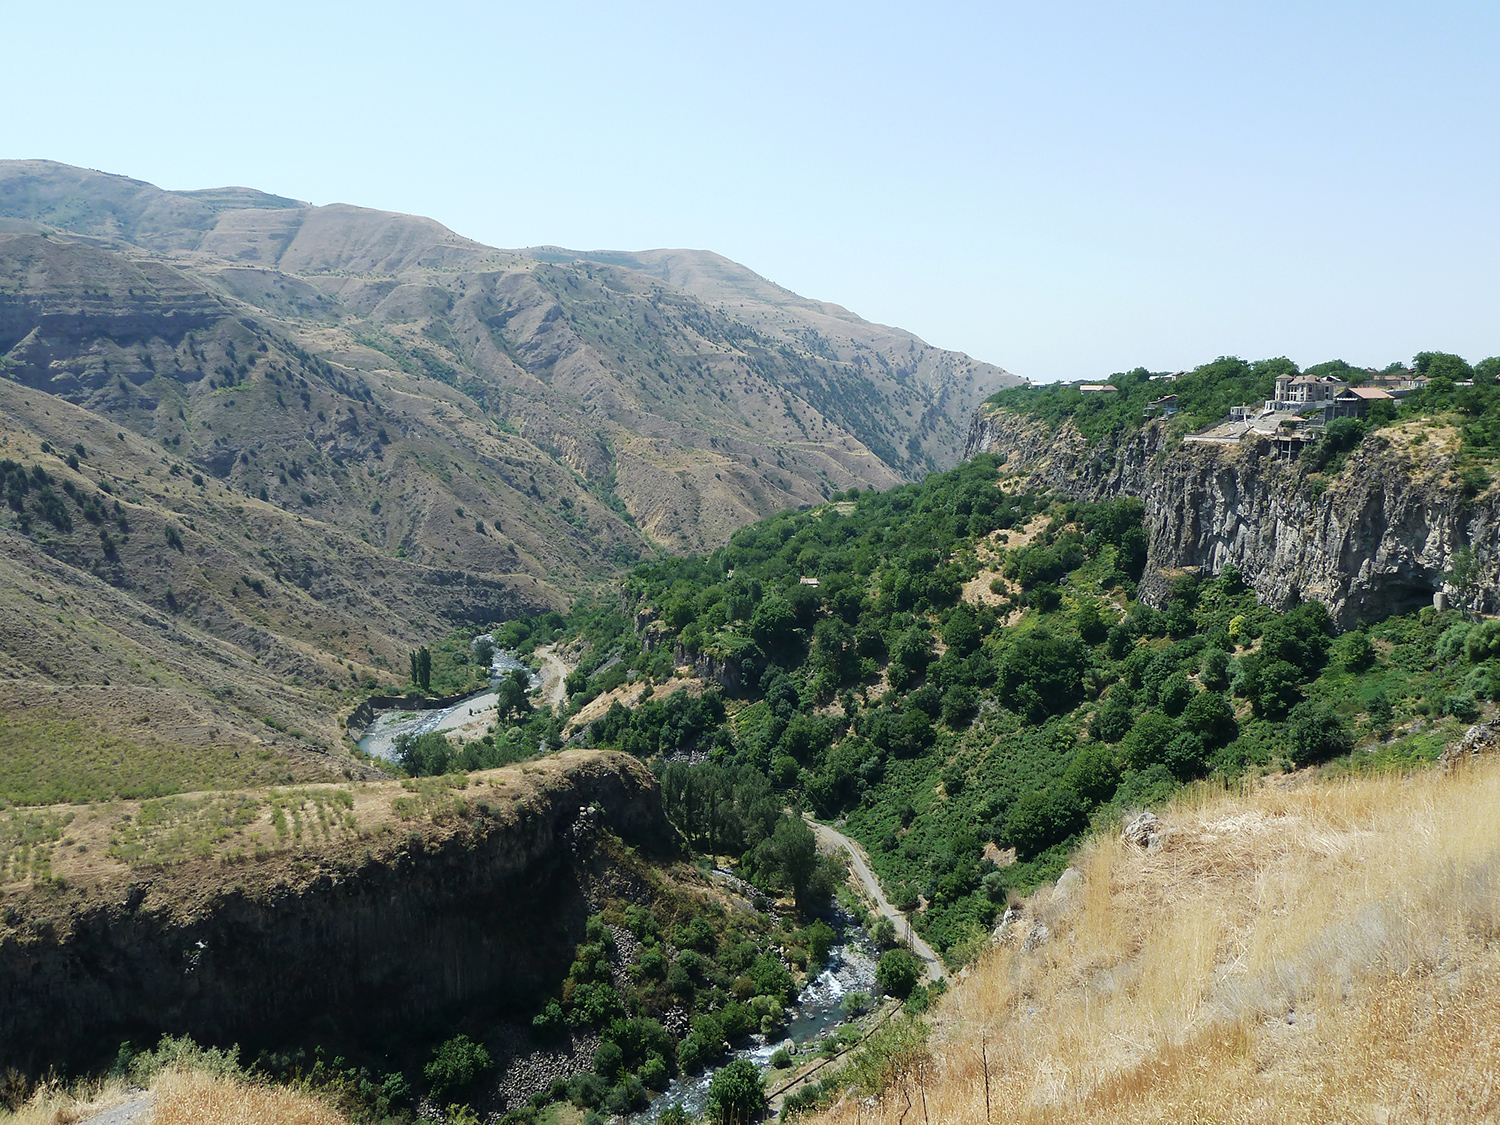 A view from Garni Temple